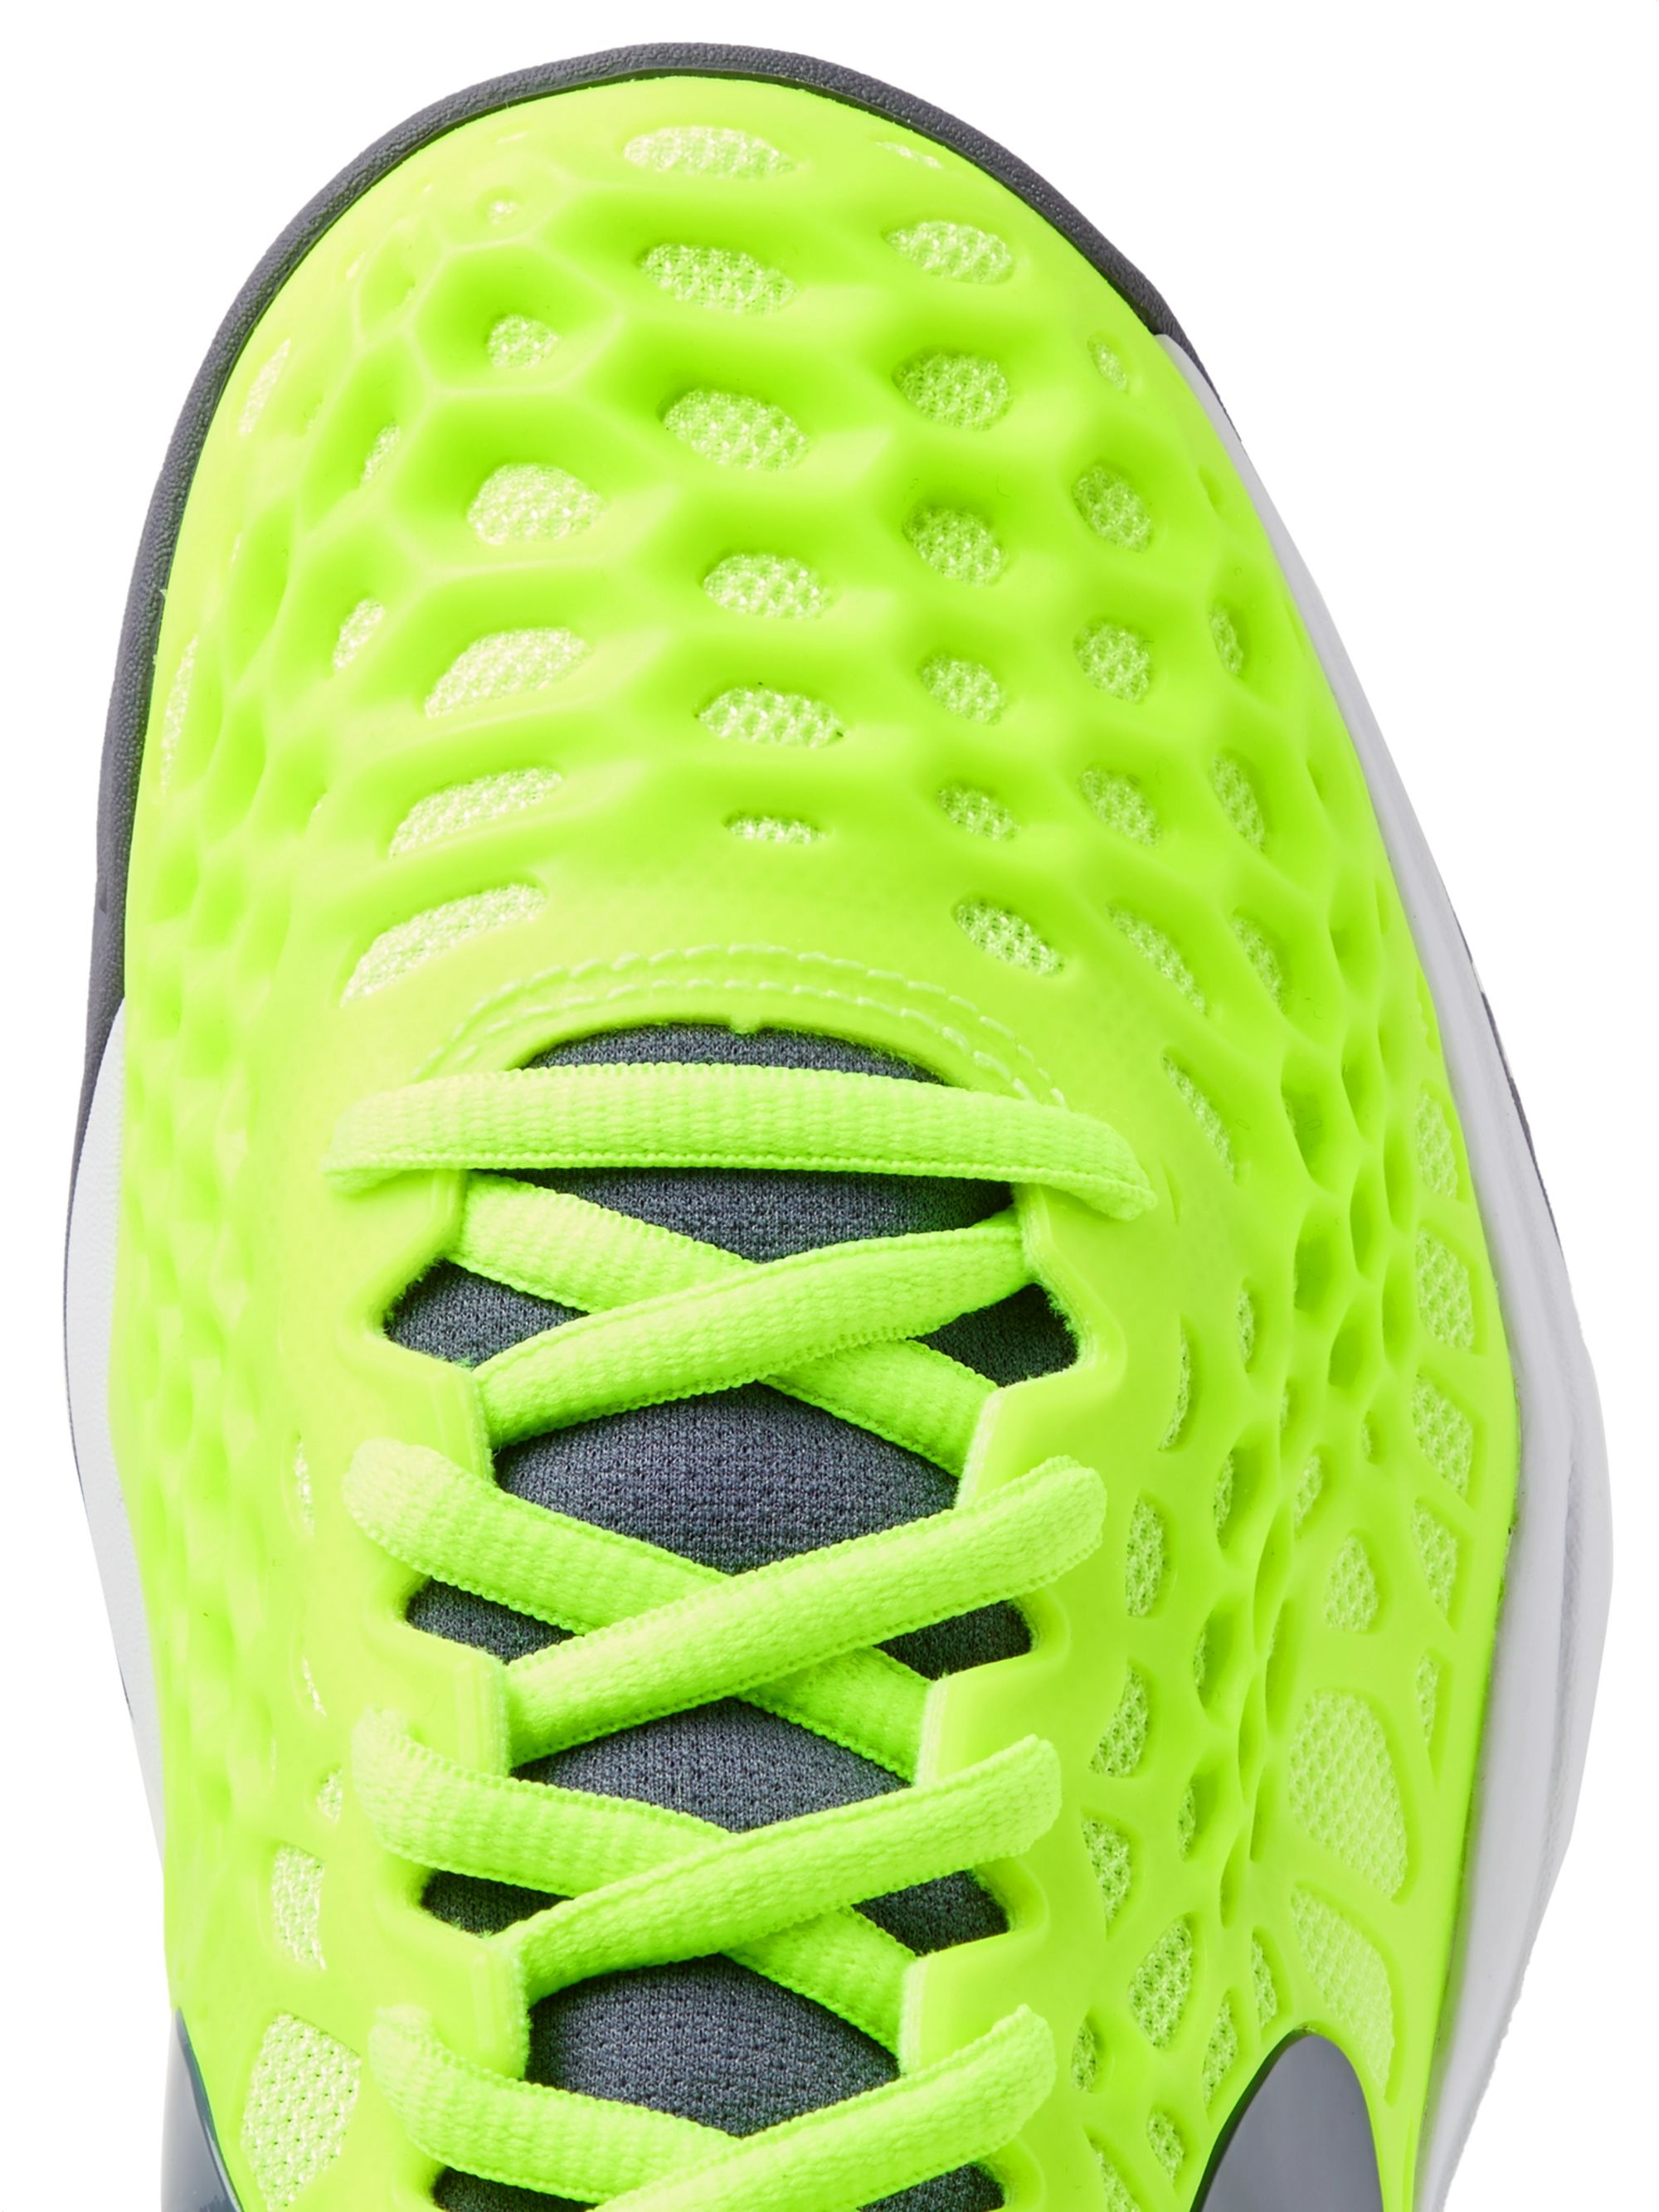 Nike Tennis Air Zoom Cage 3 HC Rubber And Mesh Tennis Sneakers